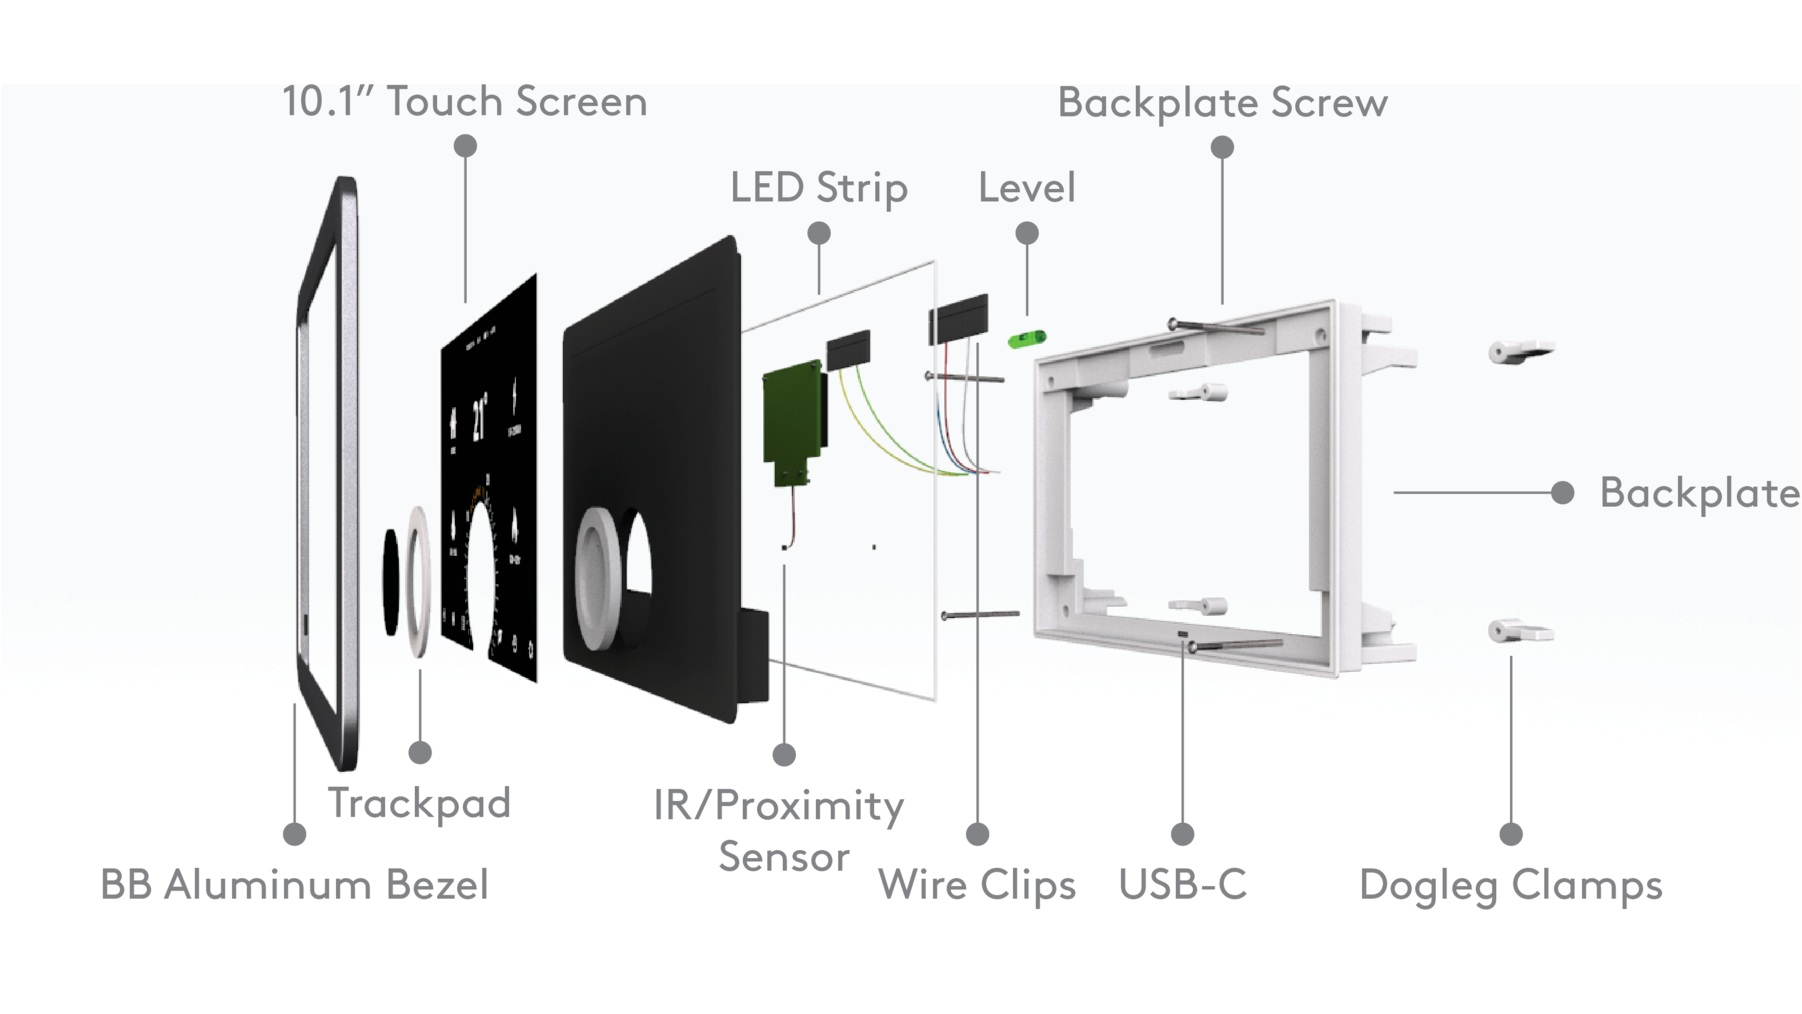 Technical Components - Since the device is mounted in-wall, most of the components are hidden. To accomplish this, dogleg clamps were used to secure a back-plate to the wall. The internal components are attached to the bezel and snap-fit to the back-plate, allowing for easy removal.